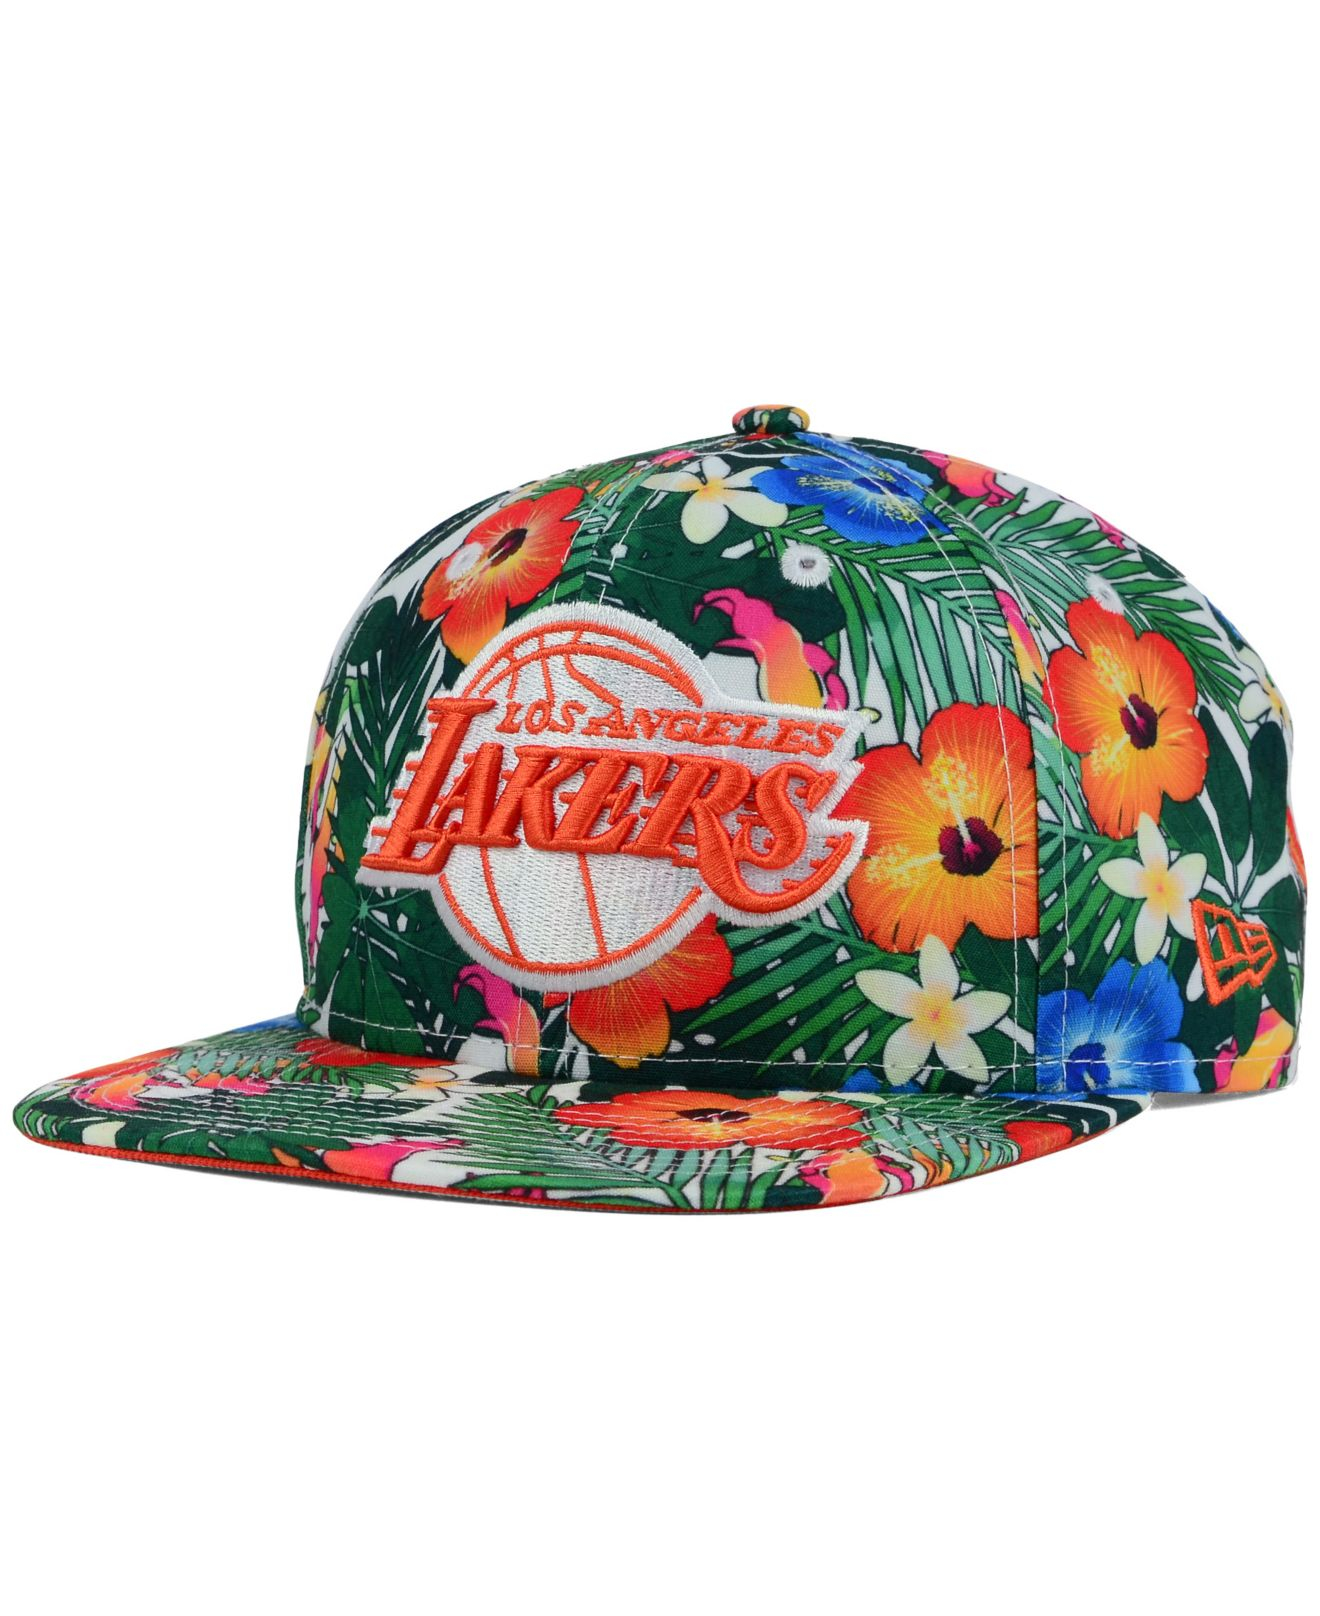 eebe6794ce630 ... coupon code for lyst ktz los angeles lakers hwc light floral 9fifty  snapback cap 41a52 e7384